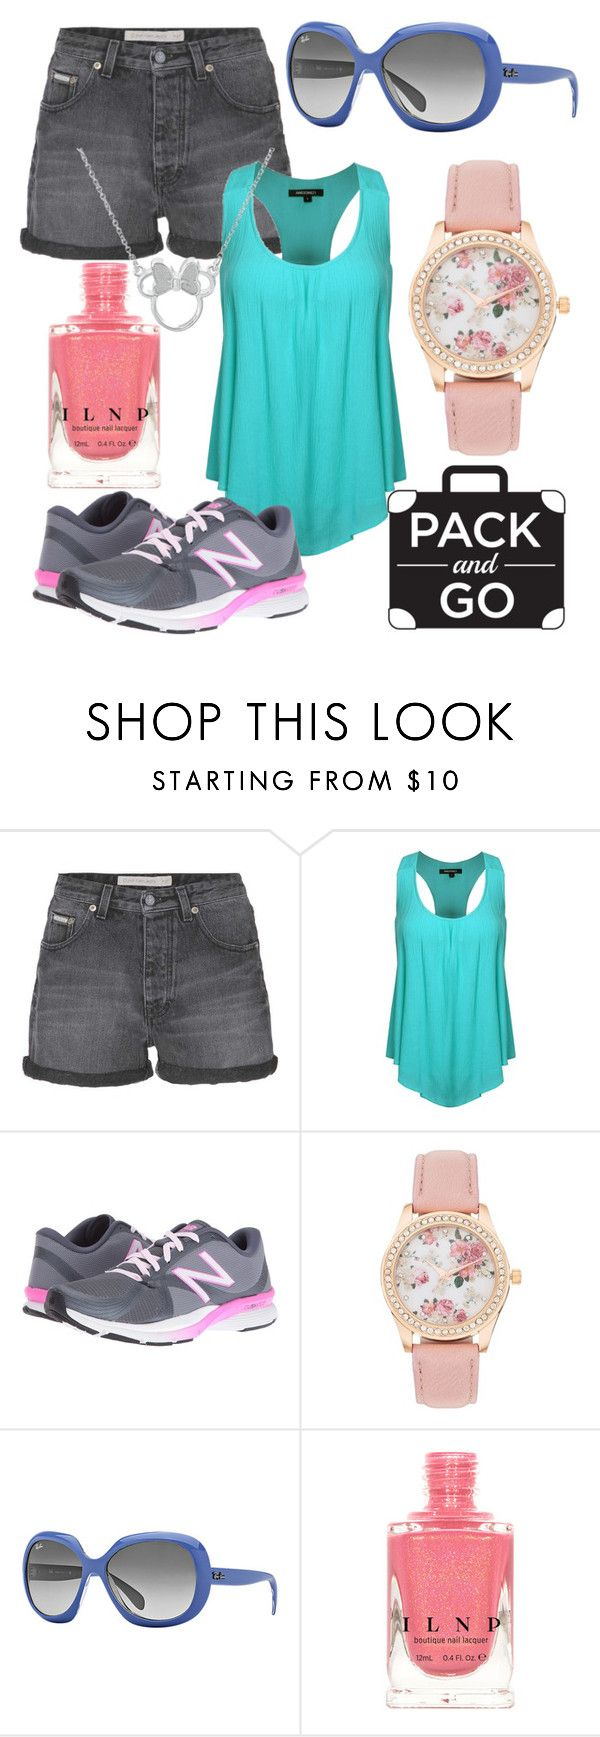 """Pack and Go Disney"" by professionalpest ❤ liked on Polyvore featuring Calvin Klein Jeans, New Balance, Ray-Ban and Disney"